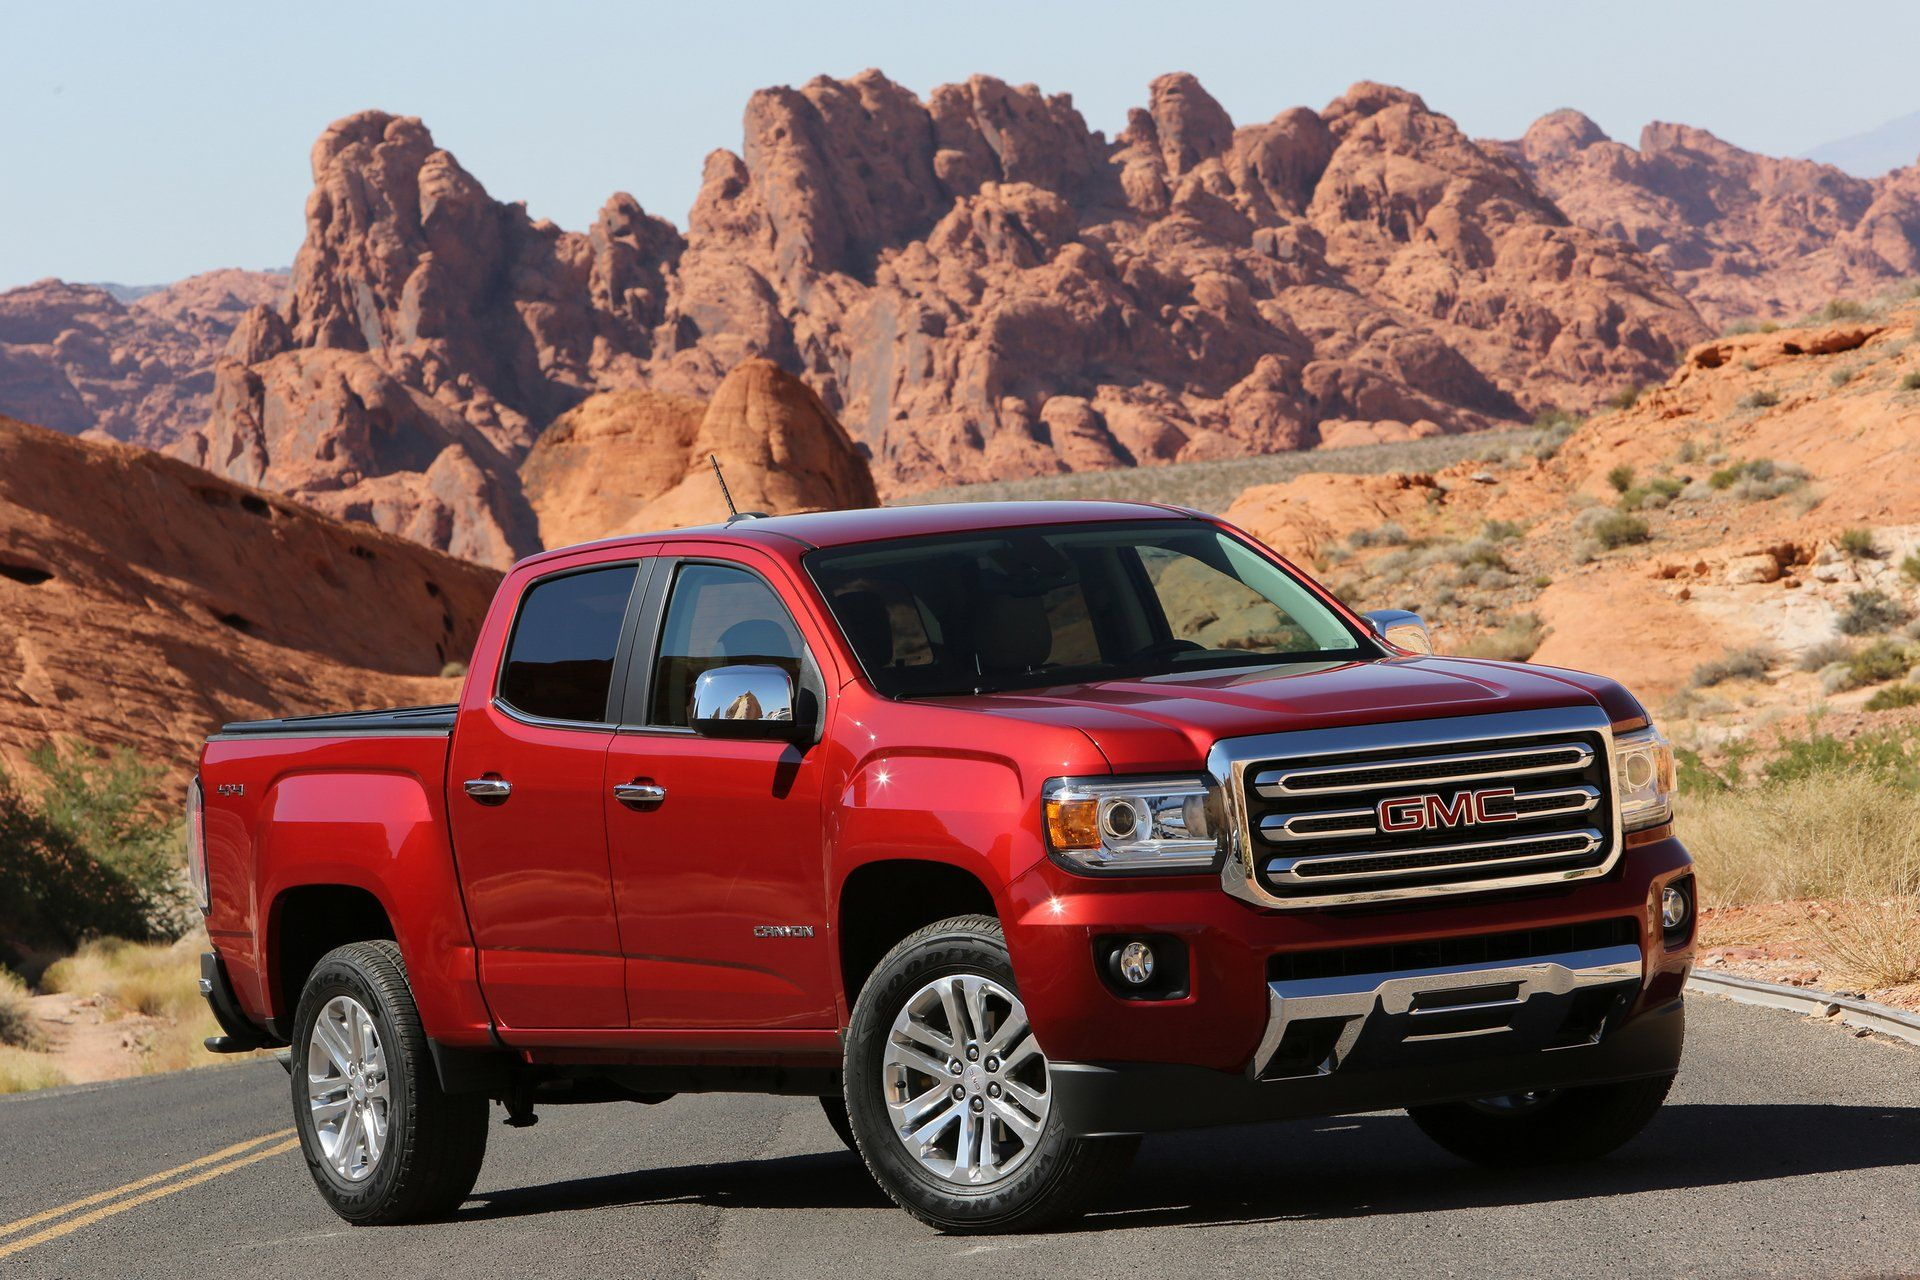 Gmc Canyon And Sierra Ranked Among Highest For Resale Gmc Canyon Canyon Diesel Gmc Trucks